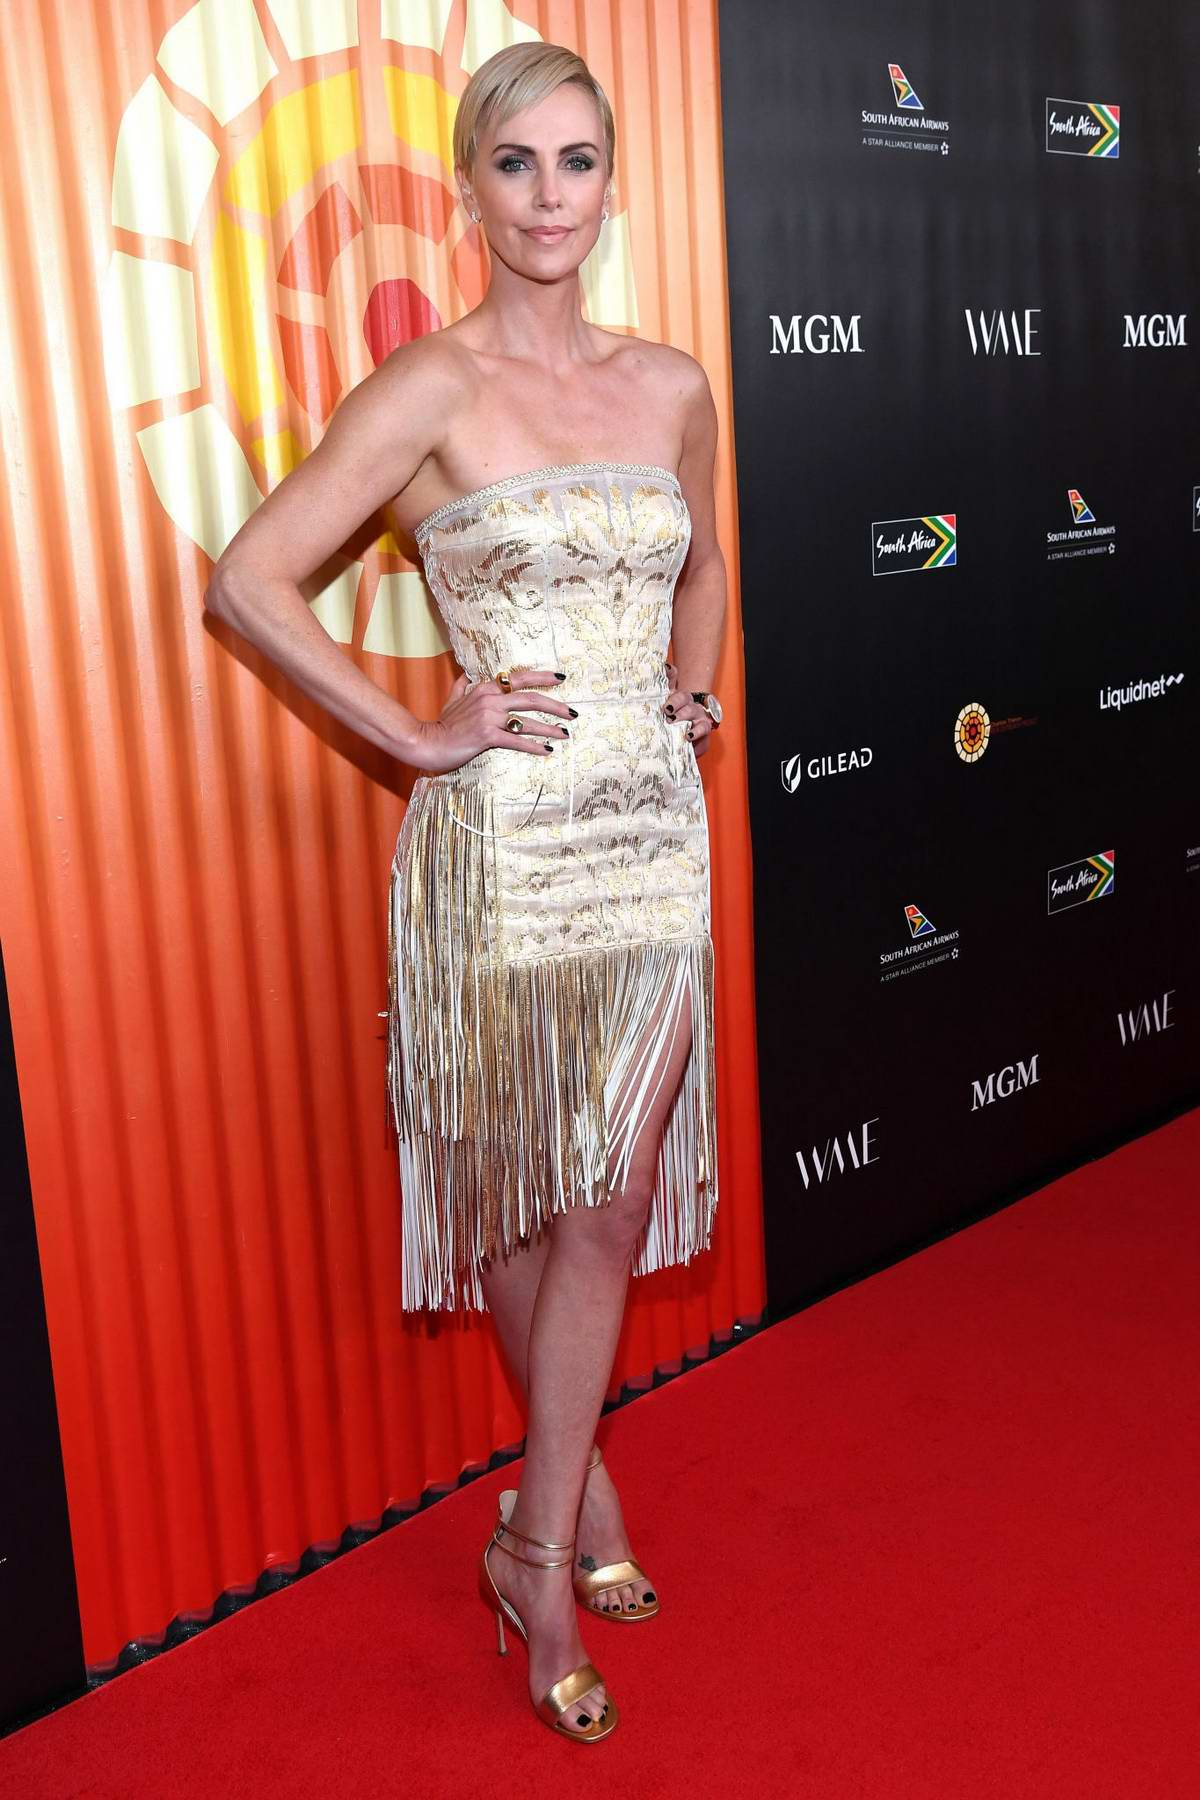 Charlize Theron attends Charlize Theron Africa Outreach Project Fundraising Event at The Africa Center in New York City